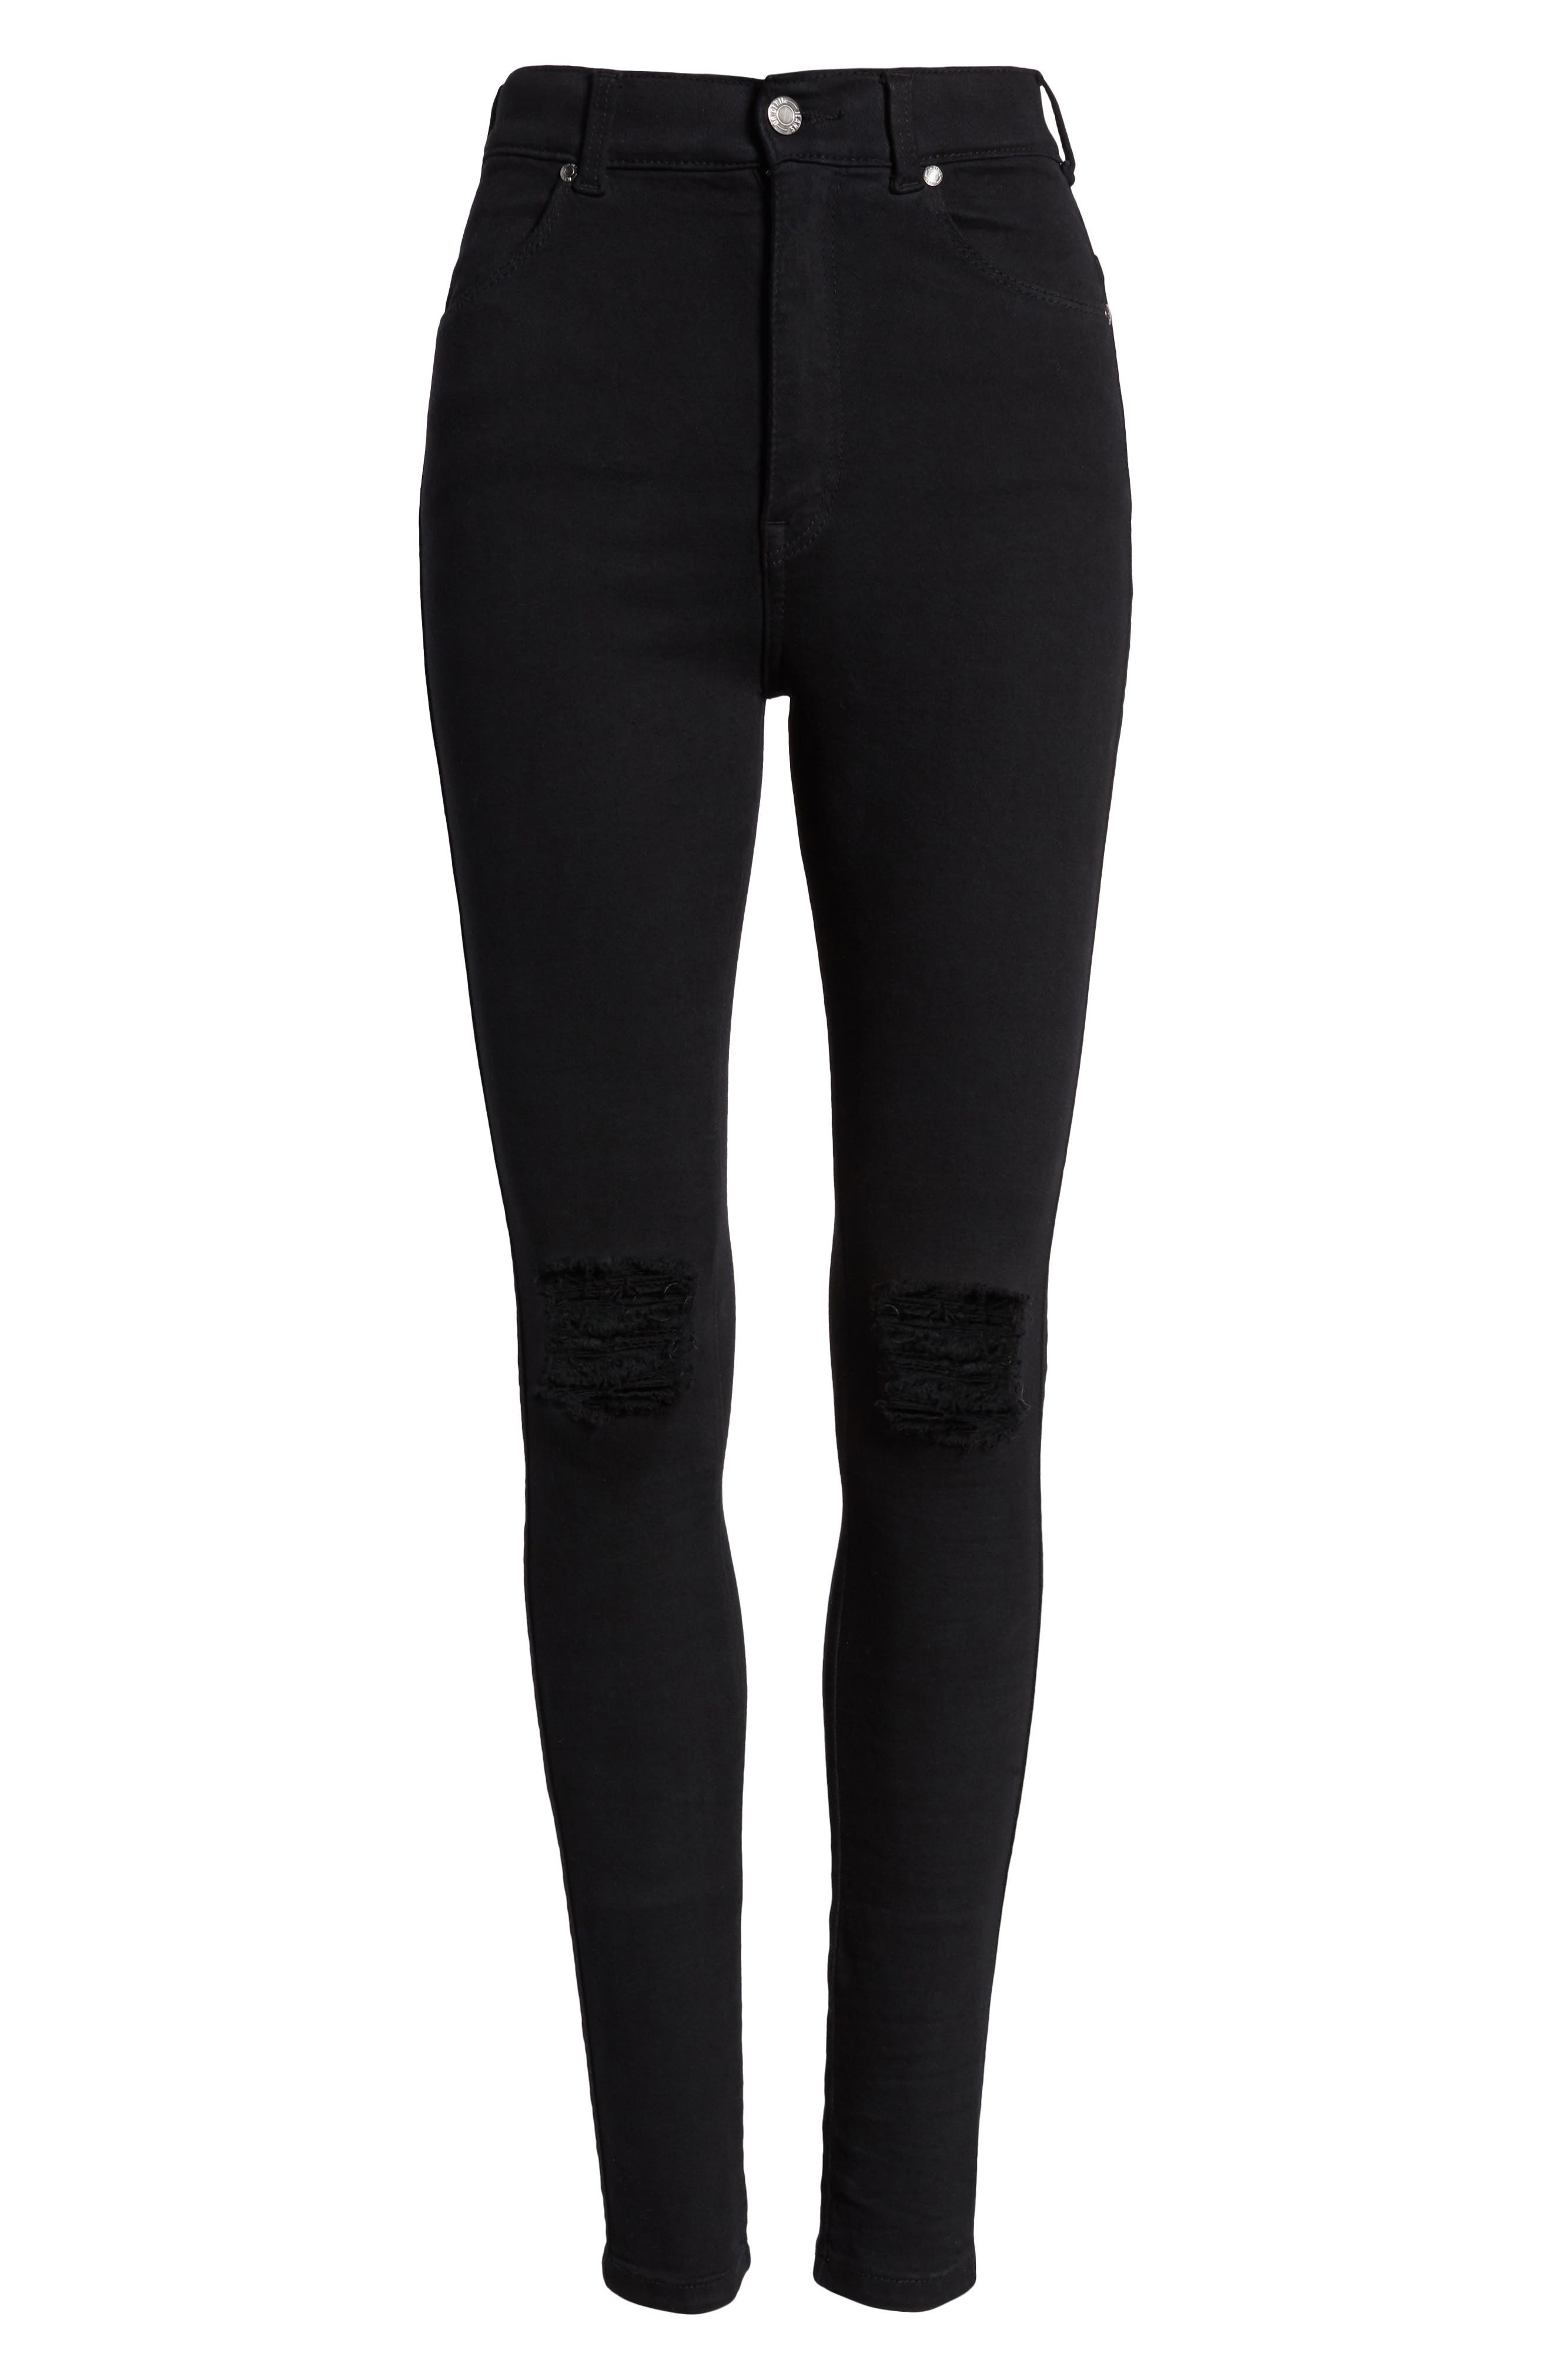 Moxy Ripped Knee Skinny Jeans,                             Alternate thumbnail 7, color,                             Black